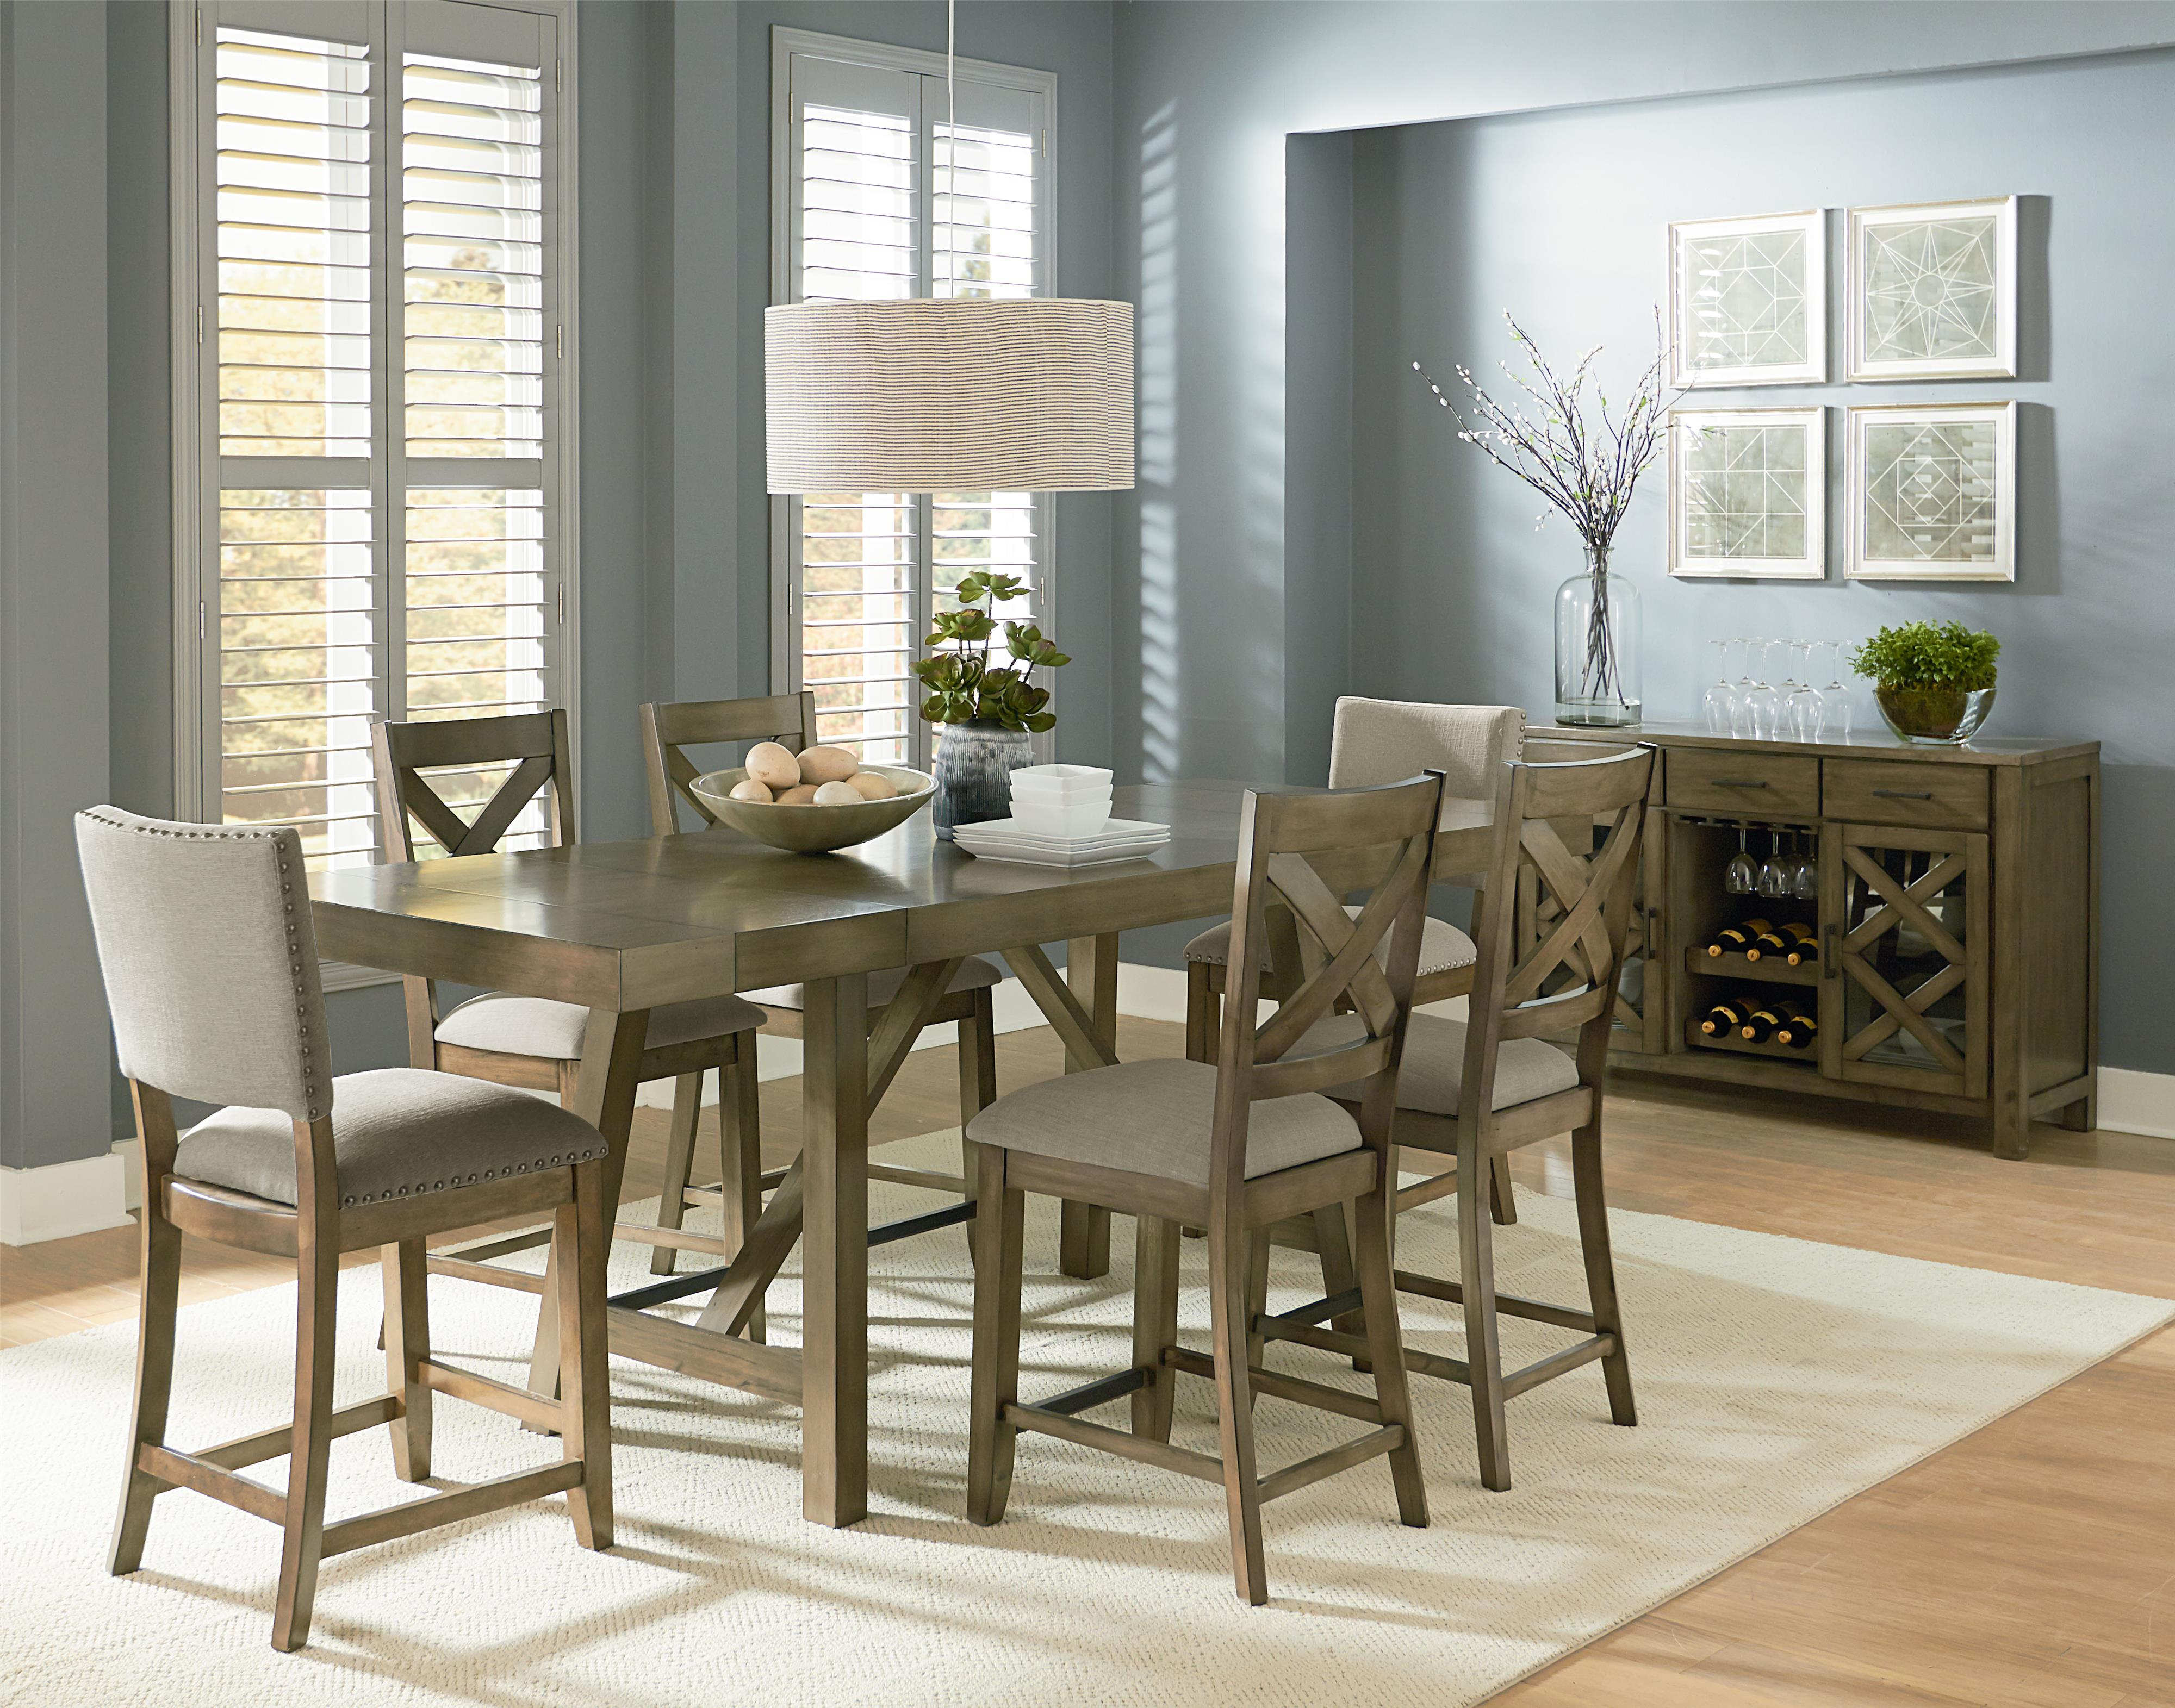 Standard Furniture Omaha Grey Casual Dining Room Group - Item Number: 16680 Dining Room Group 7